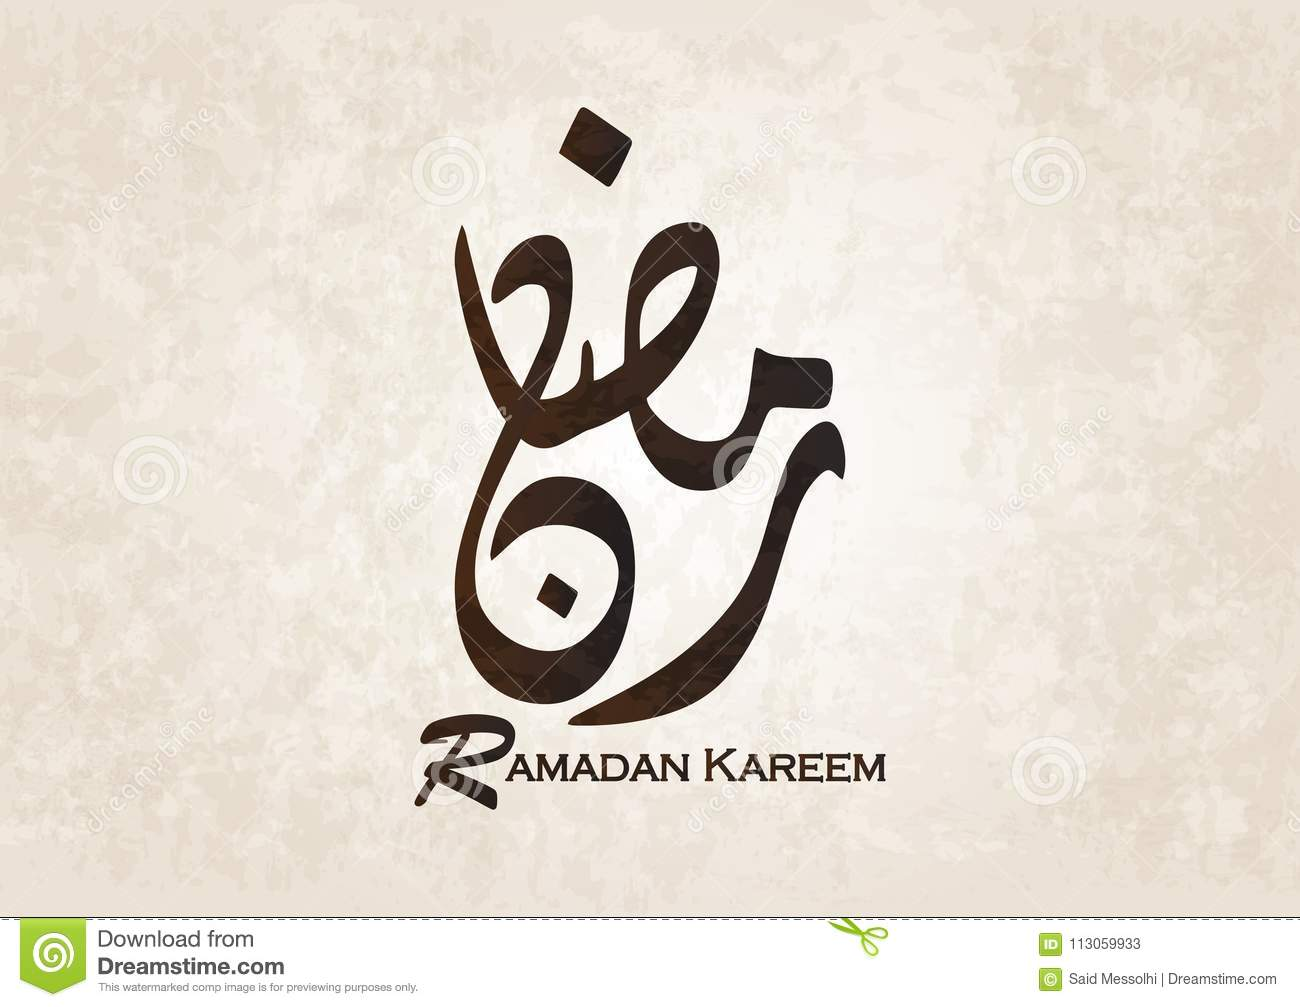 Fresh islamic arabic calligraphy art logo design examples